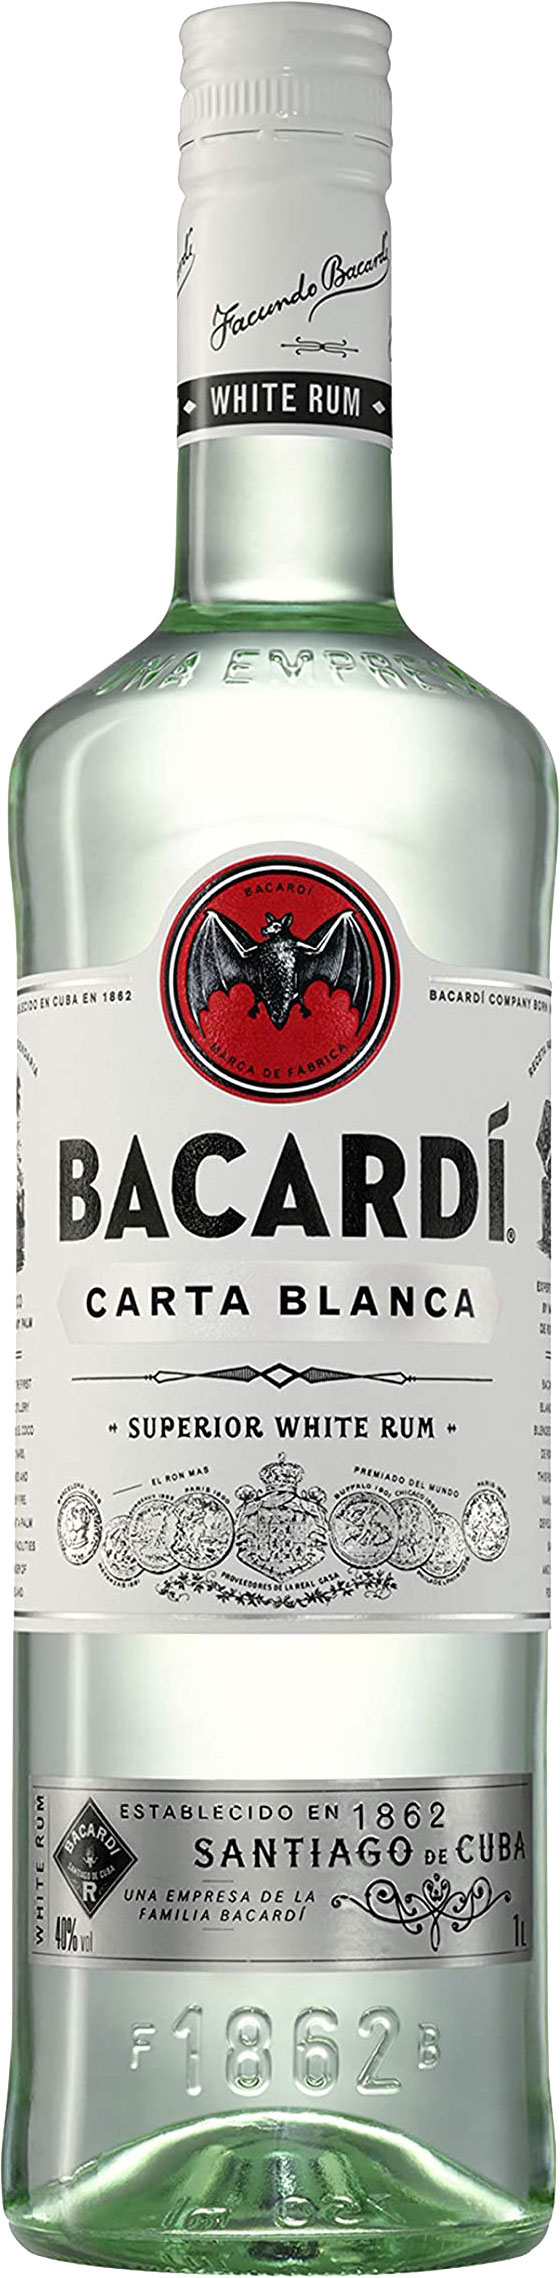 Bacardi - Carta Blanca 1.5 Litre Bottle